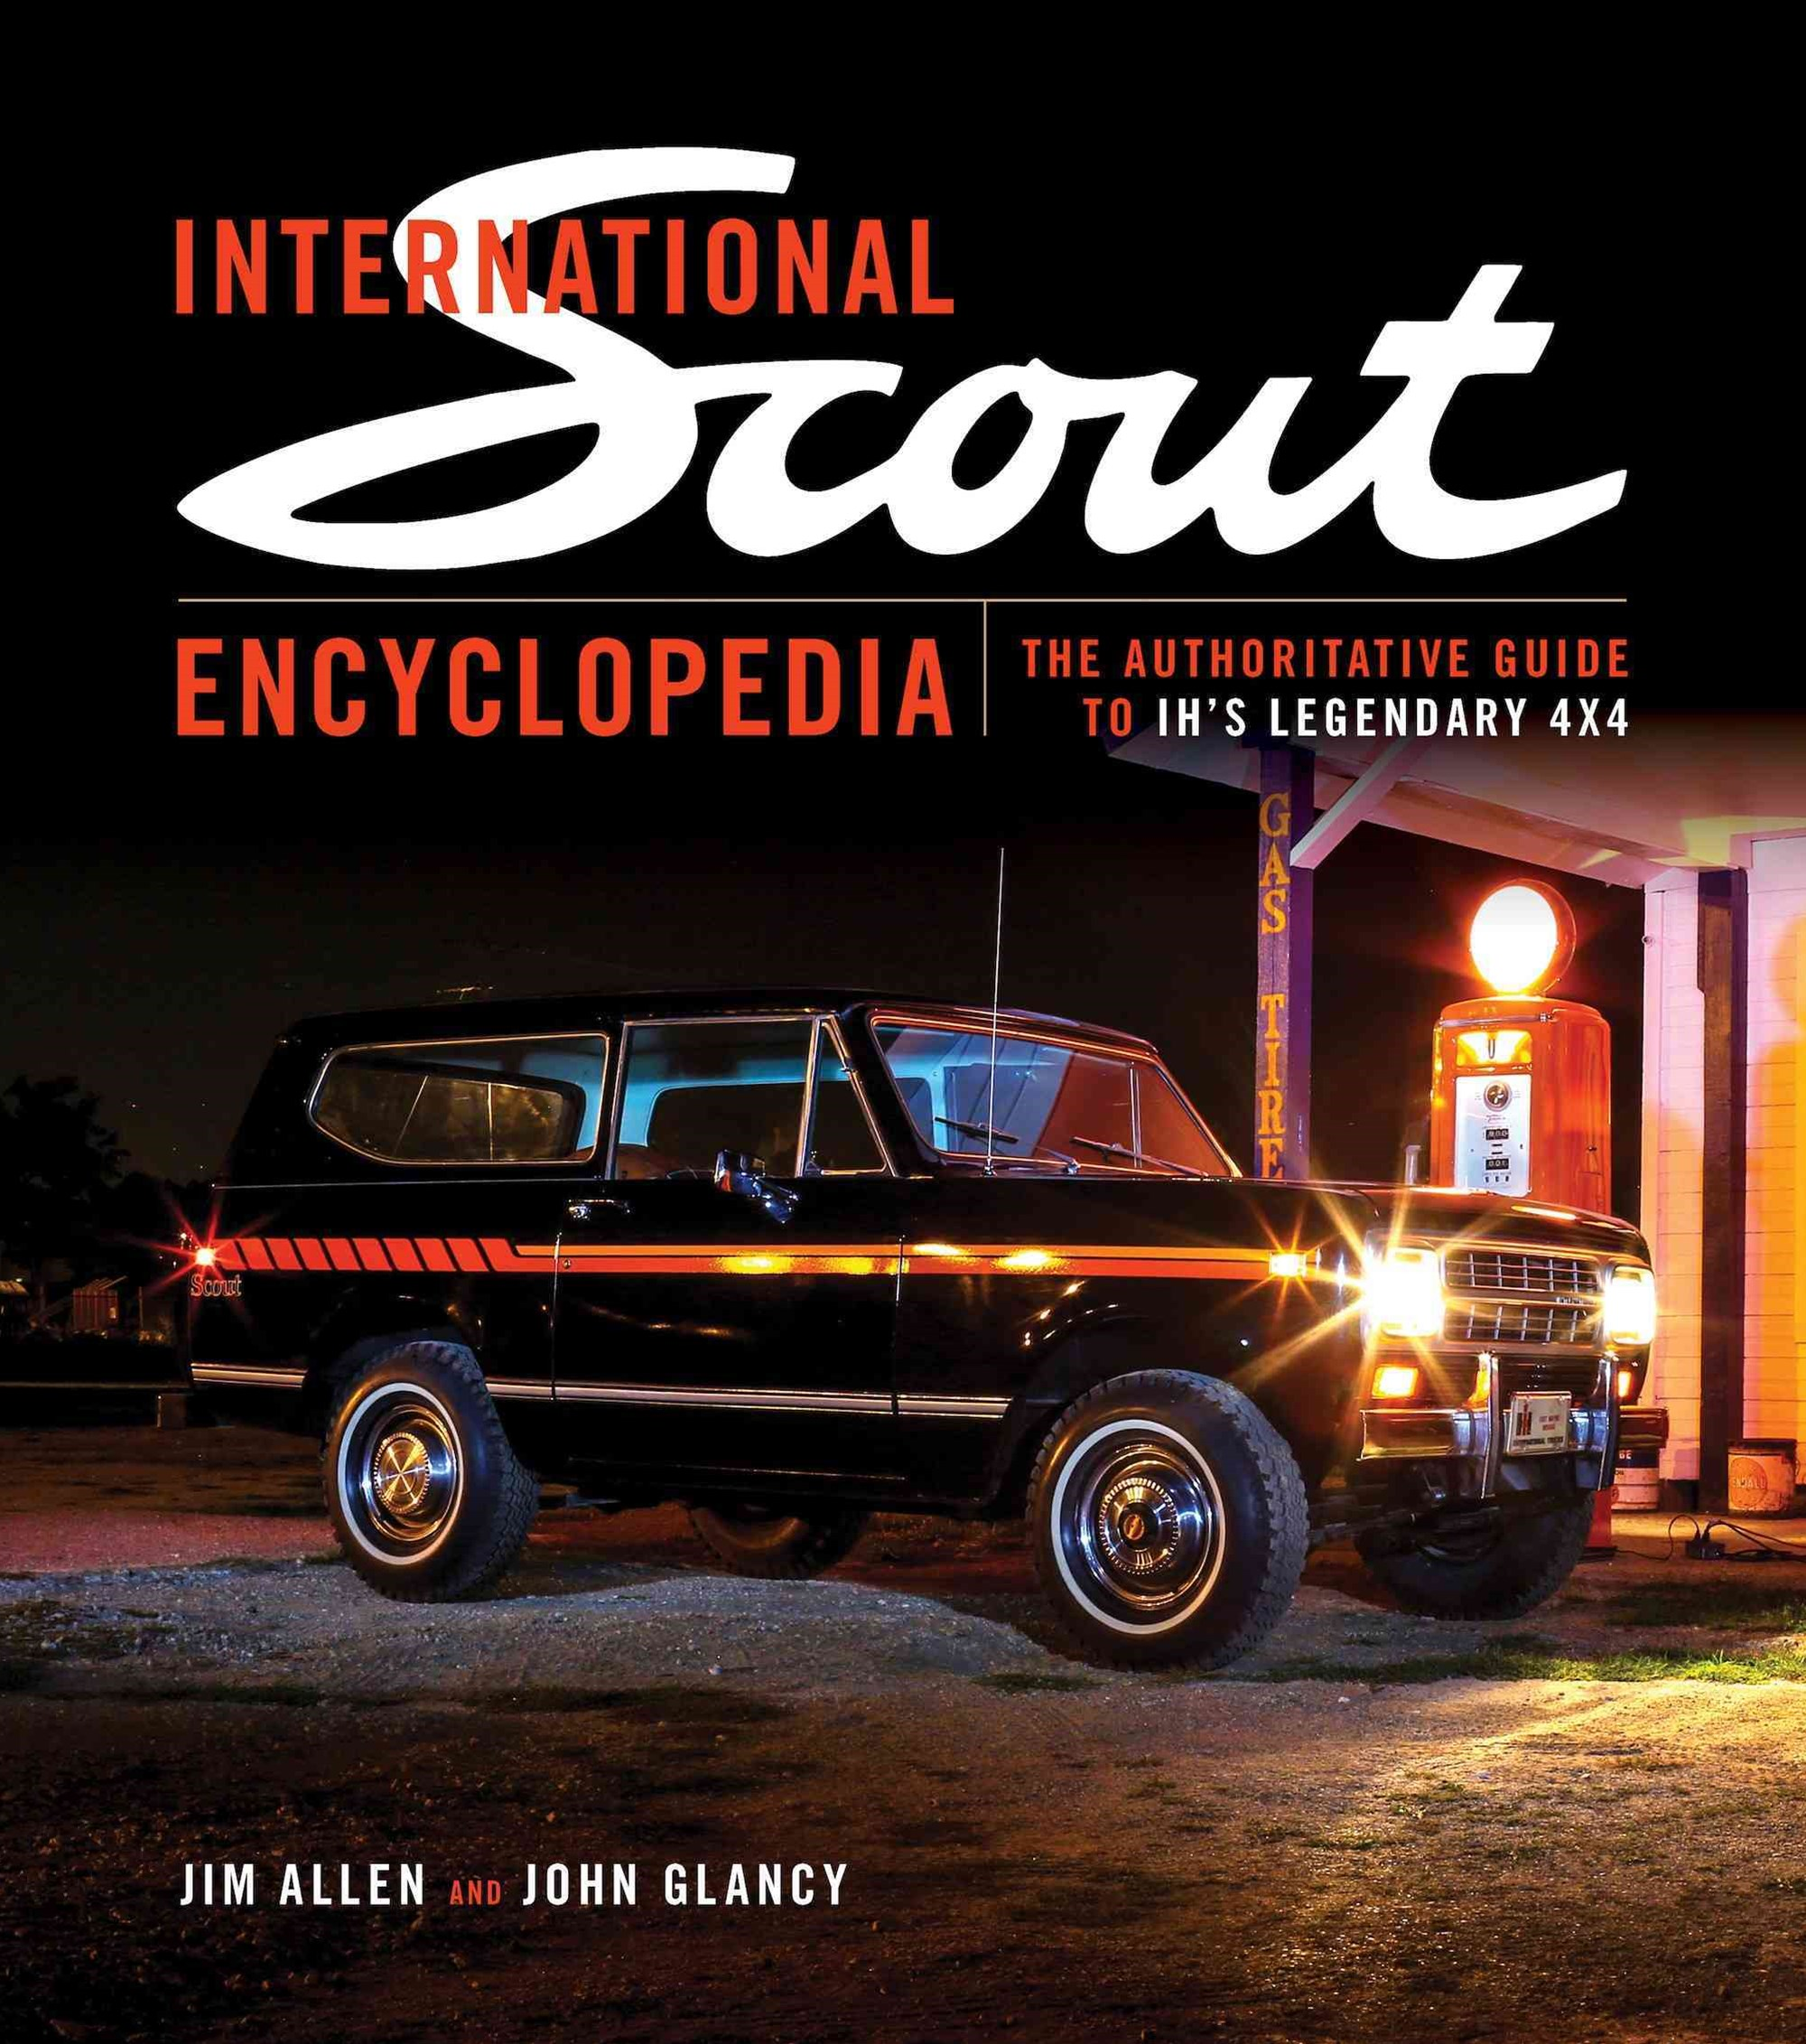 International Scout Encyclopedia